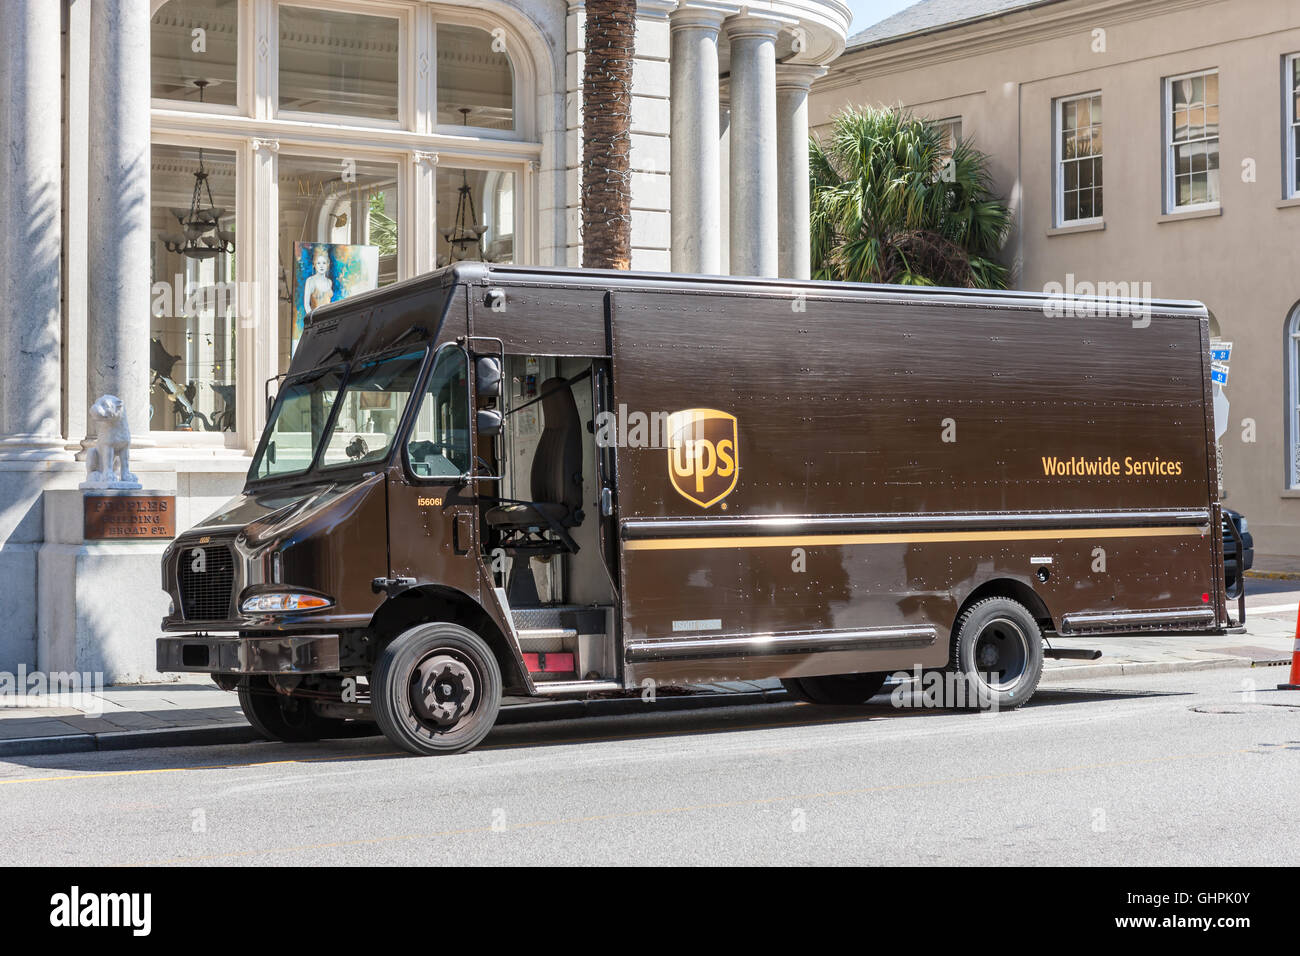 ups north charleston south carolina